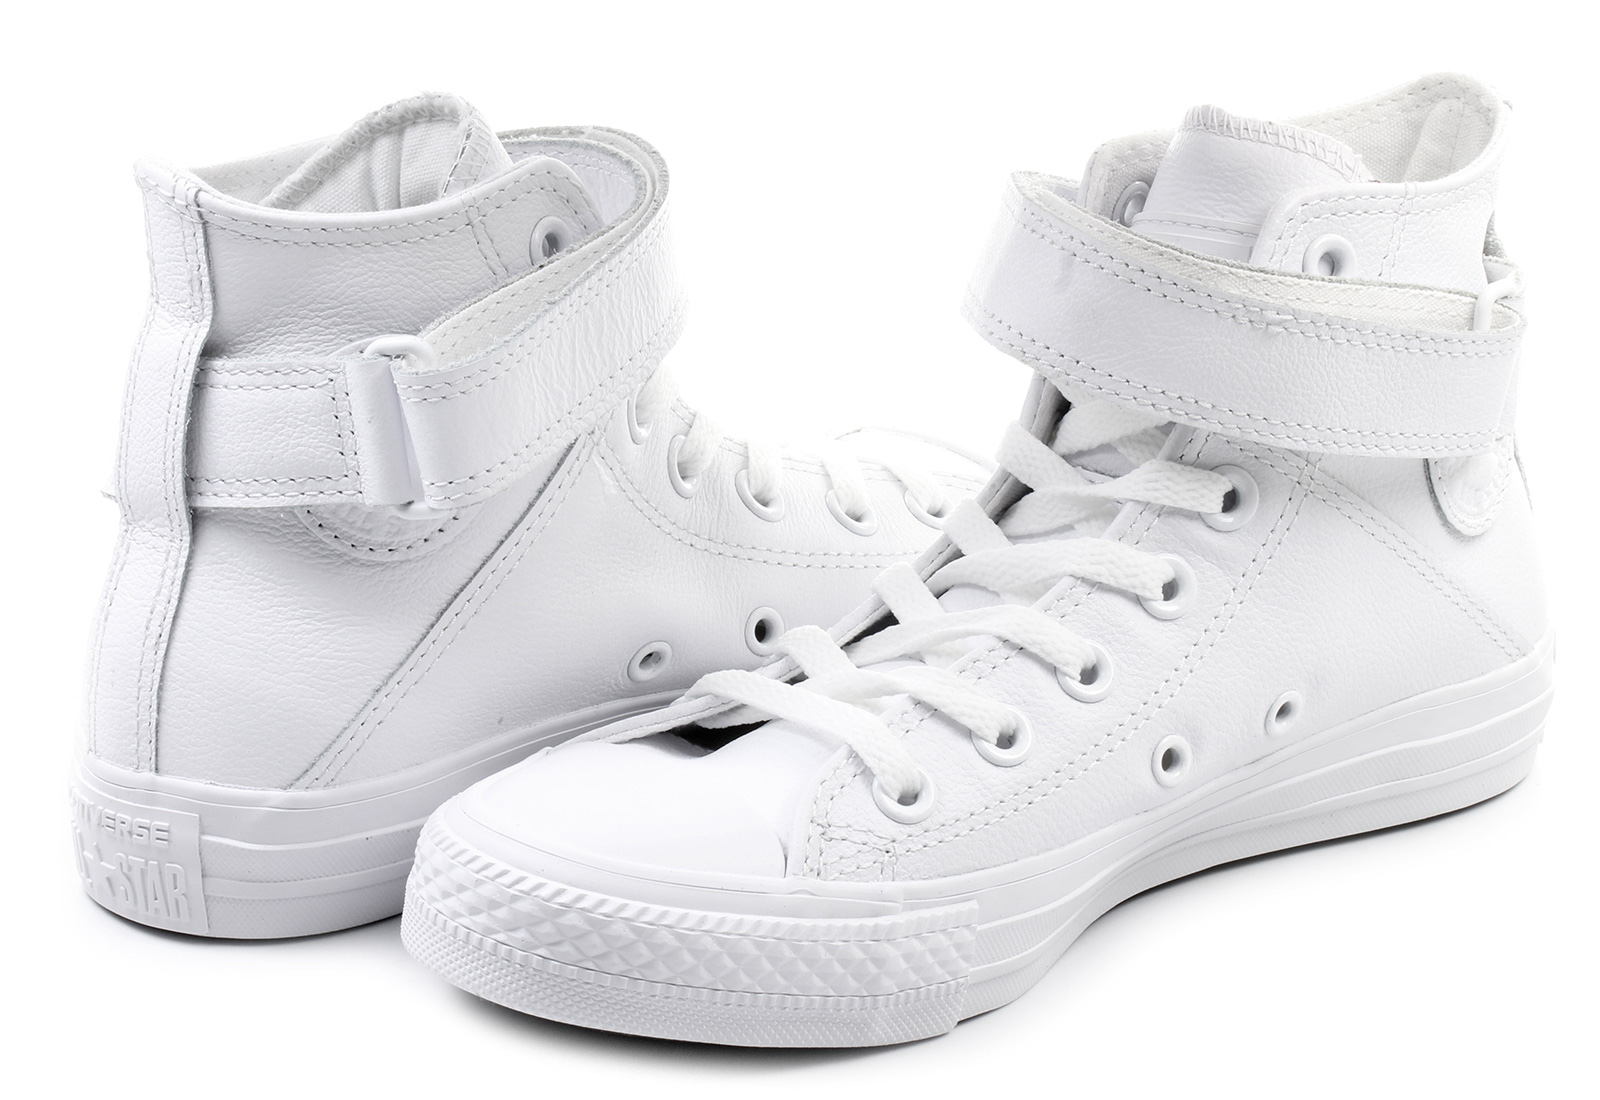 f6477cc6e3df Converse Sneakers - Chuck Taylor All Star Brea Leather Hi - 549582C ...